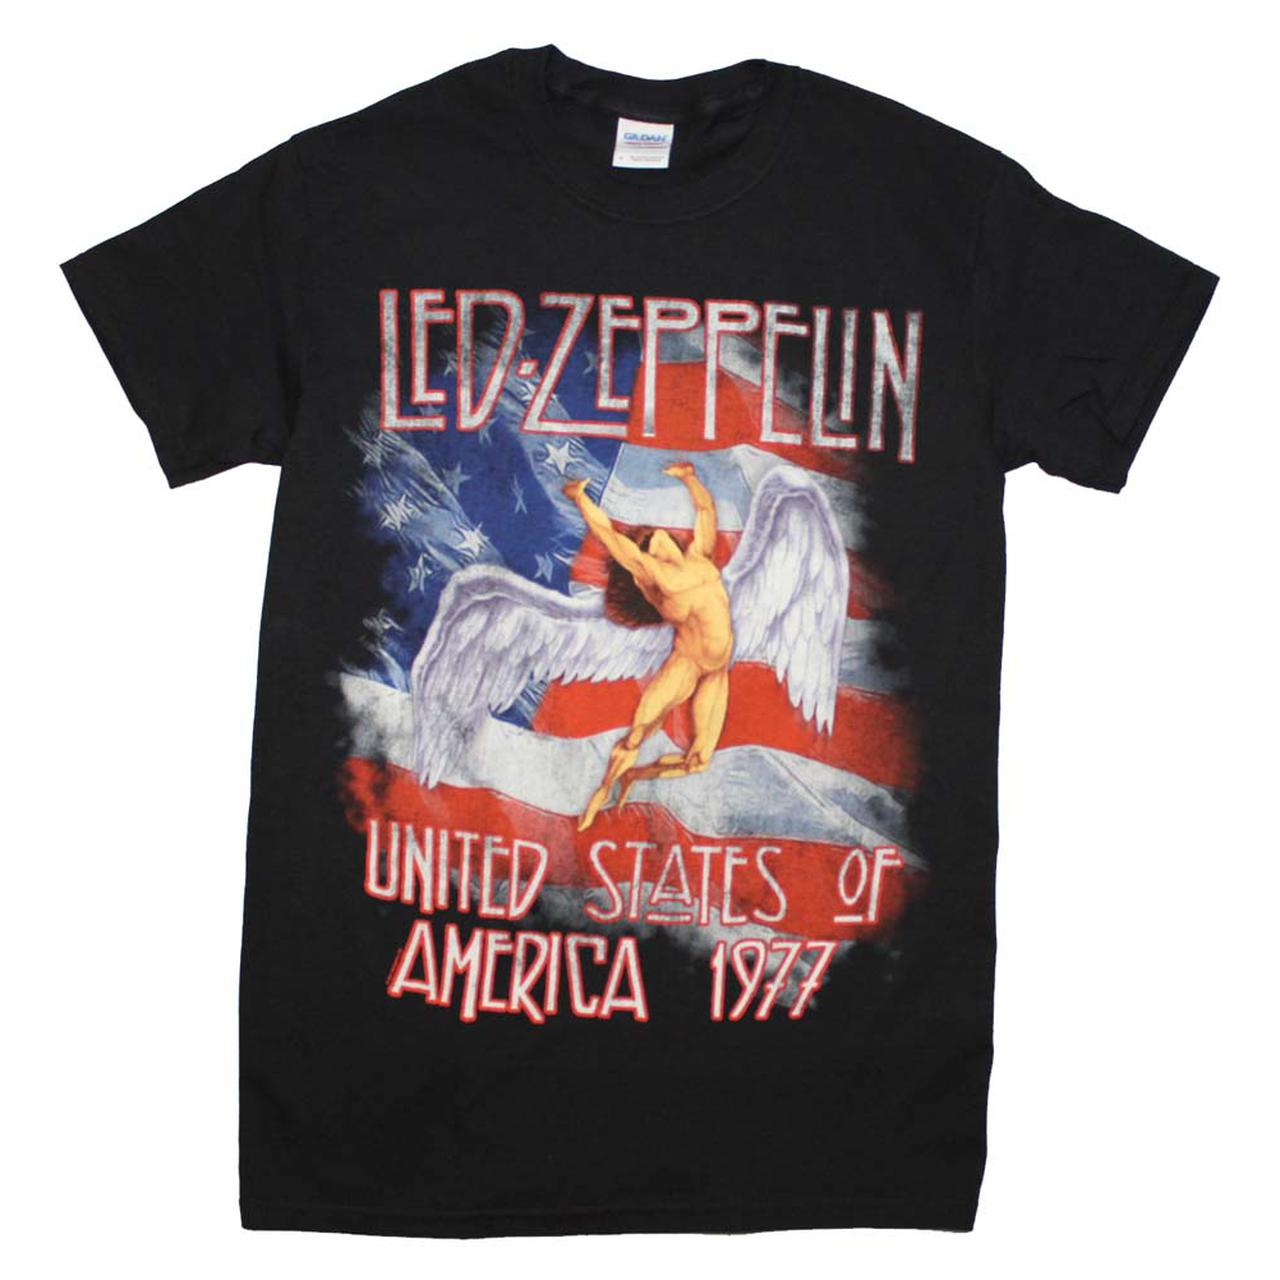 Led Zeppelin Clothing available online at Paradiso Clothing. Top Prices, High Quality Products, Quick Delivery. The cookie settings on this website are set to 'allow all cookies' to .